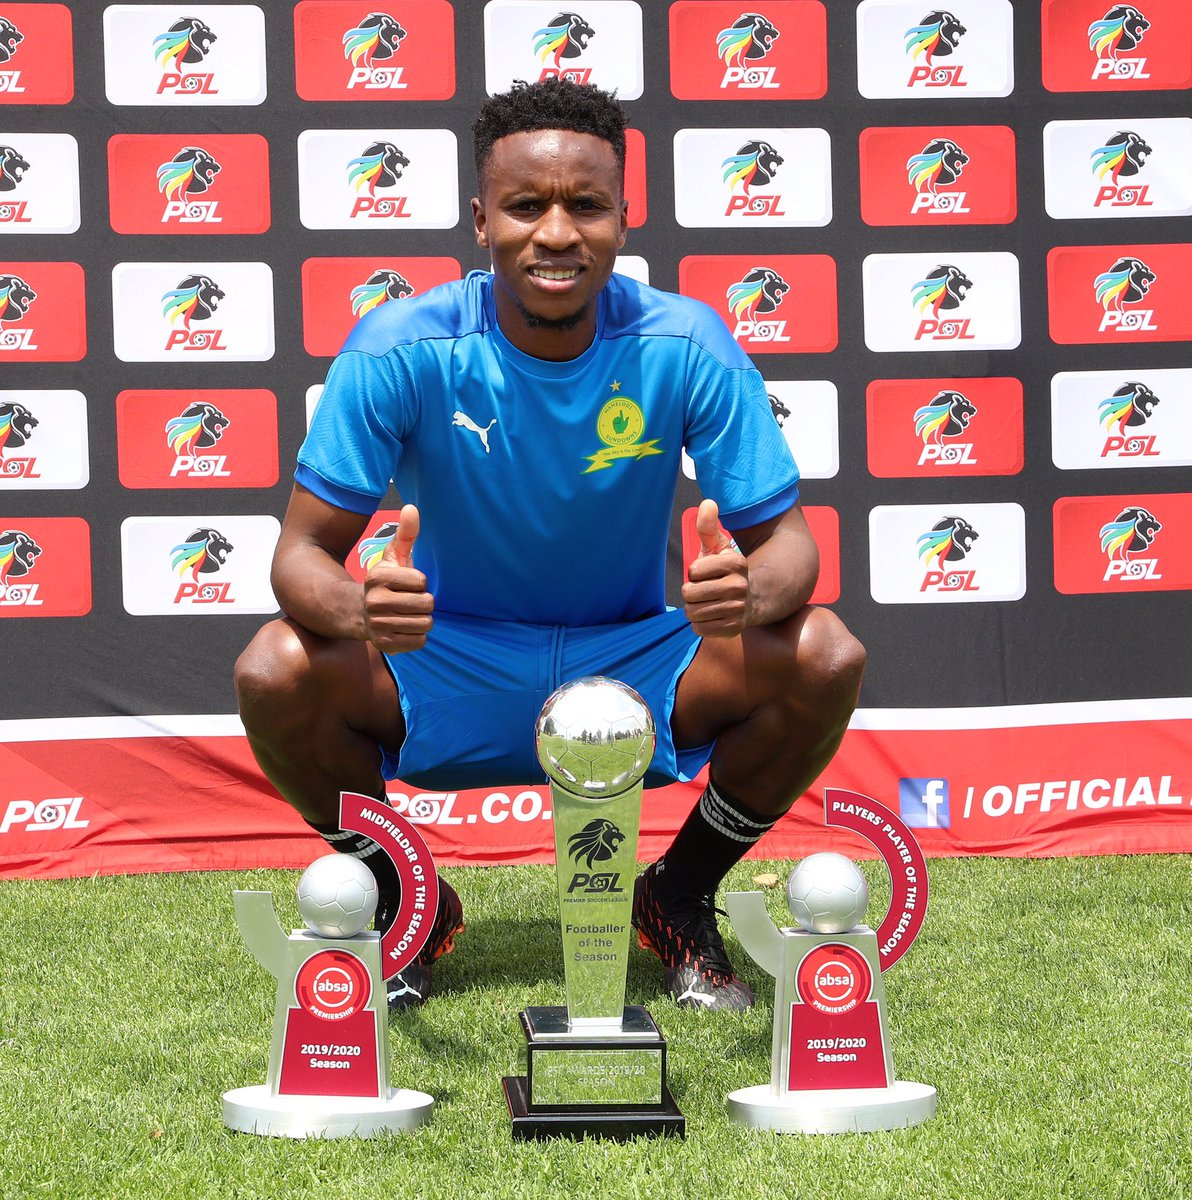 I wud like Congratulate Themba Zwane :   - 2019/20 PSL Footballer of the Season  - Absa Premiership Player's Player of the Season  - Absa Premiership Midfielder of the Season #msw @robertmarawa @MarawaSportShow @Bevstar7 https://t.co/q0c92dKZ7c